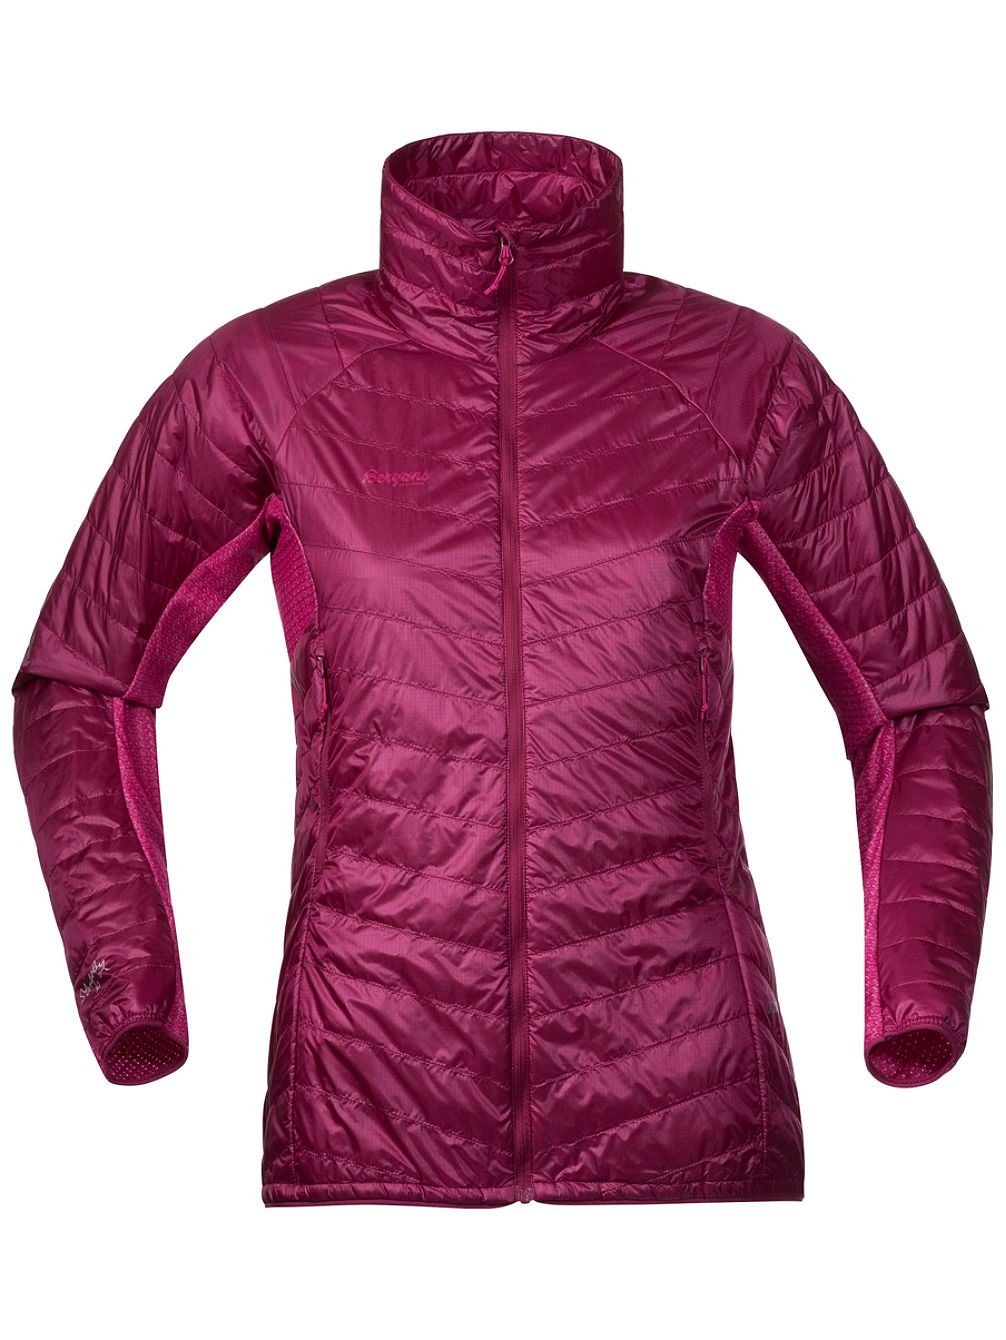 Slingsby Insulated Hybrid Outdoor Jacket